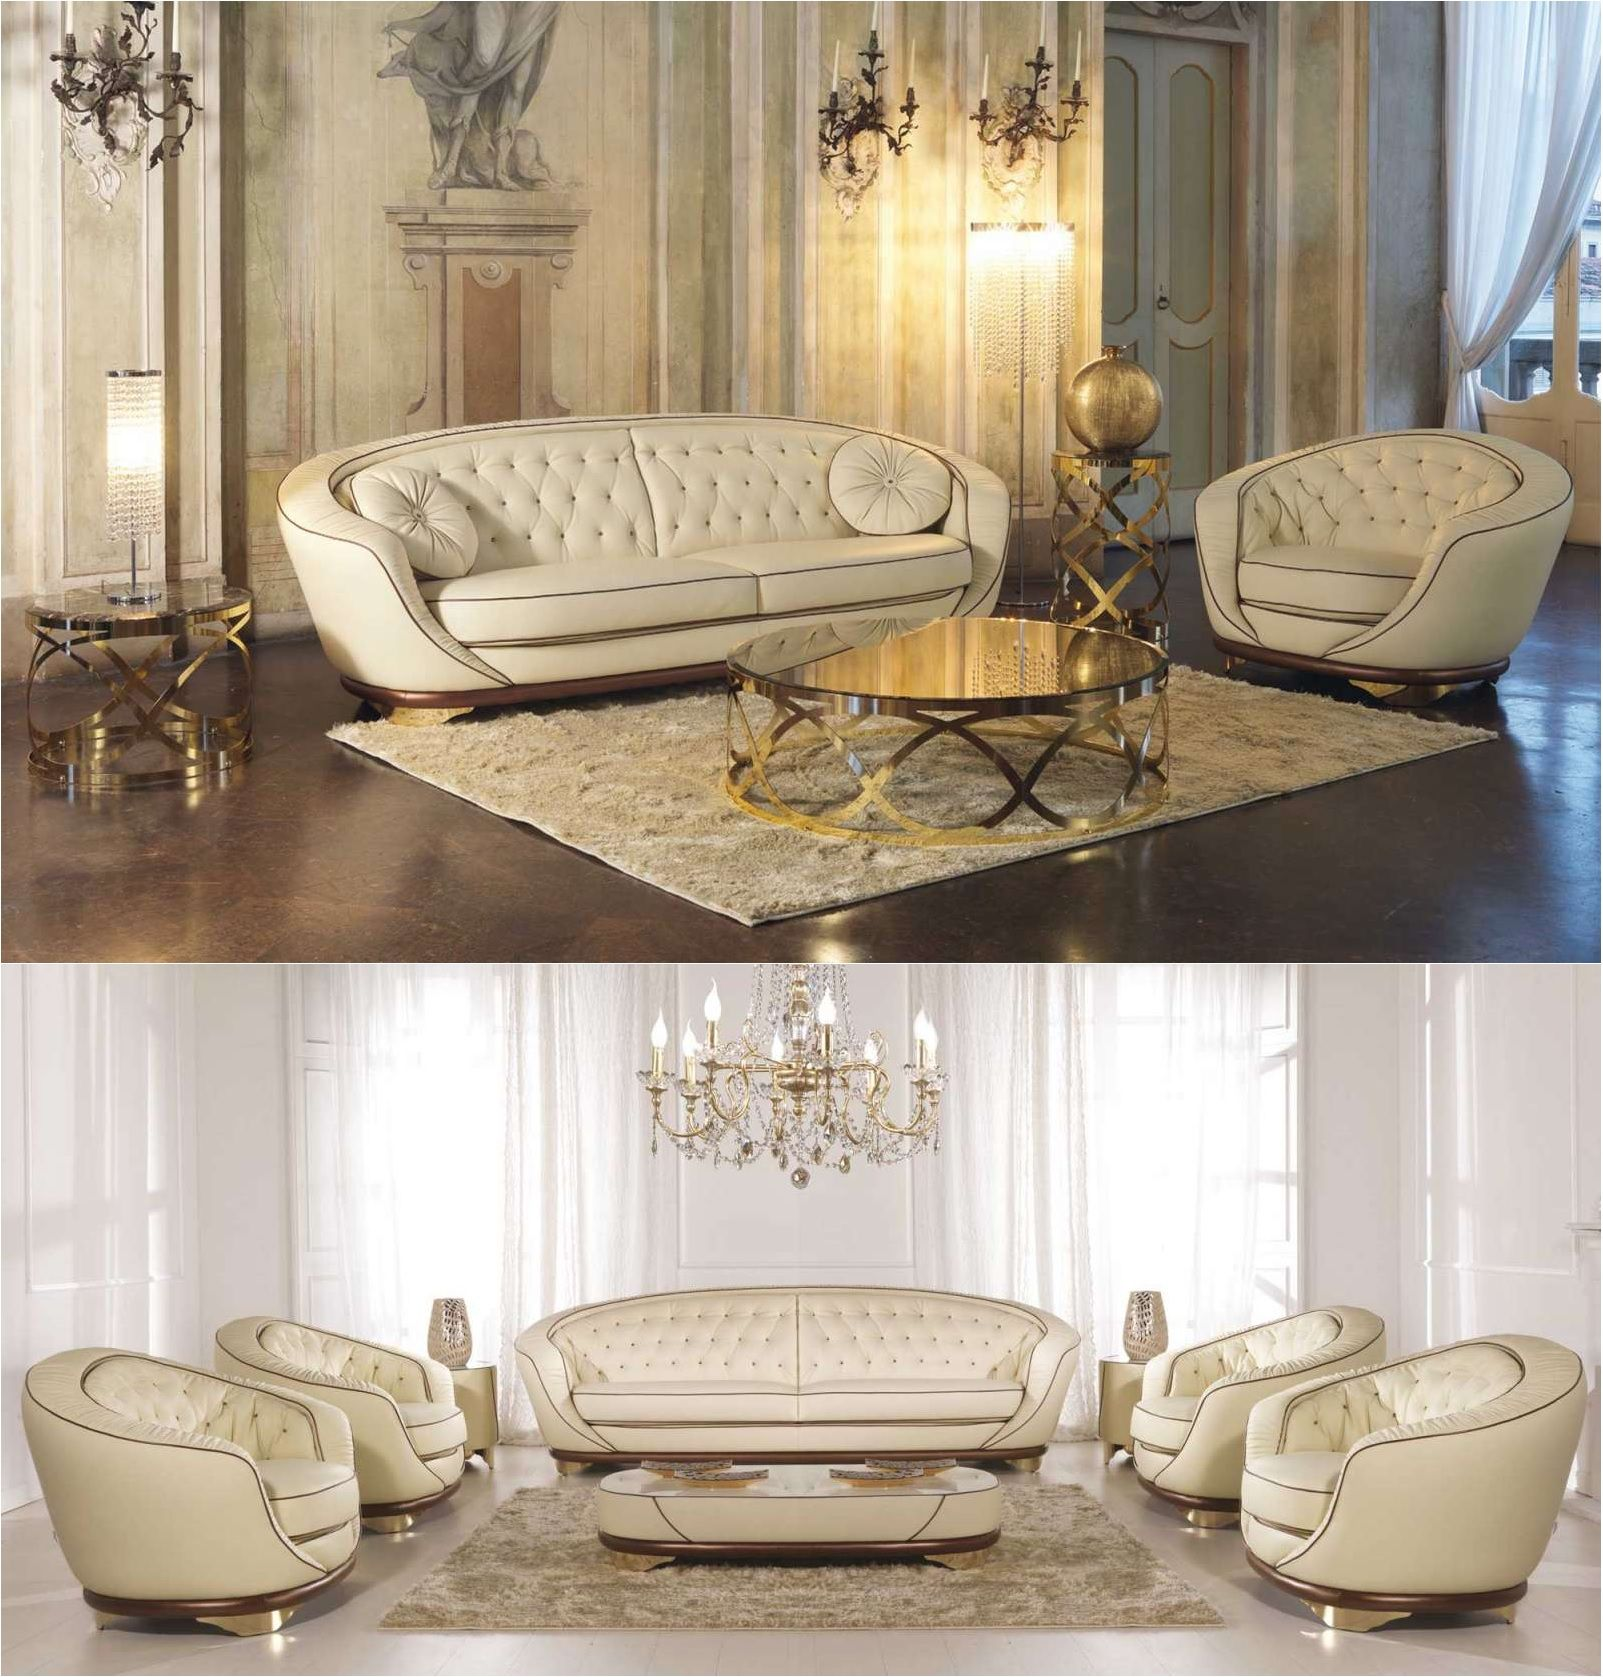 LUMIERE Collection SPACE sofa & armchairs by Formenti Divani